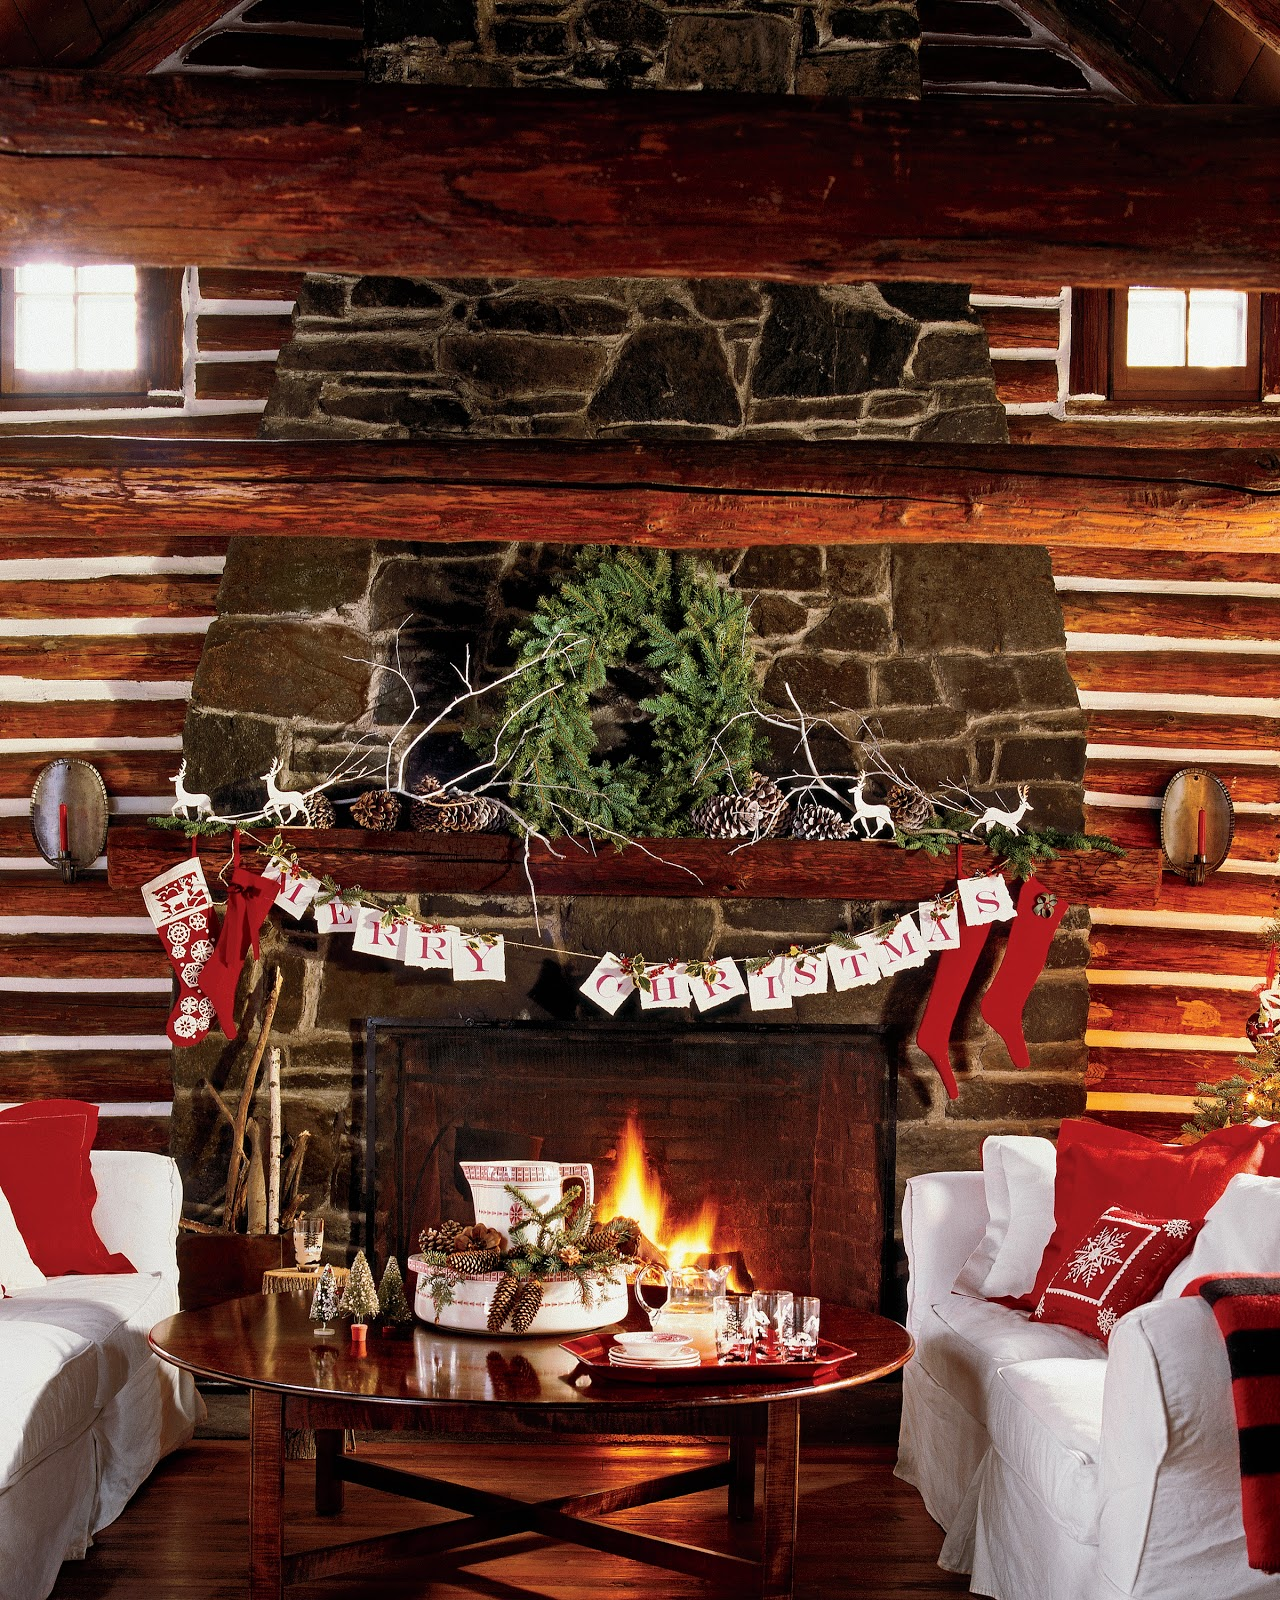 Karin lidbeck december 2012 for Country cabin christmas